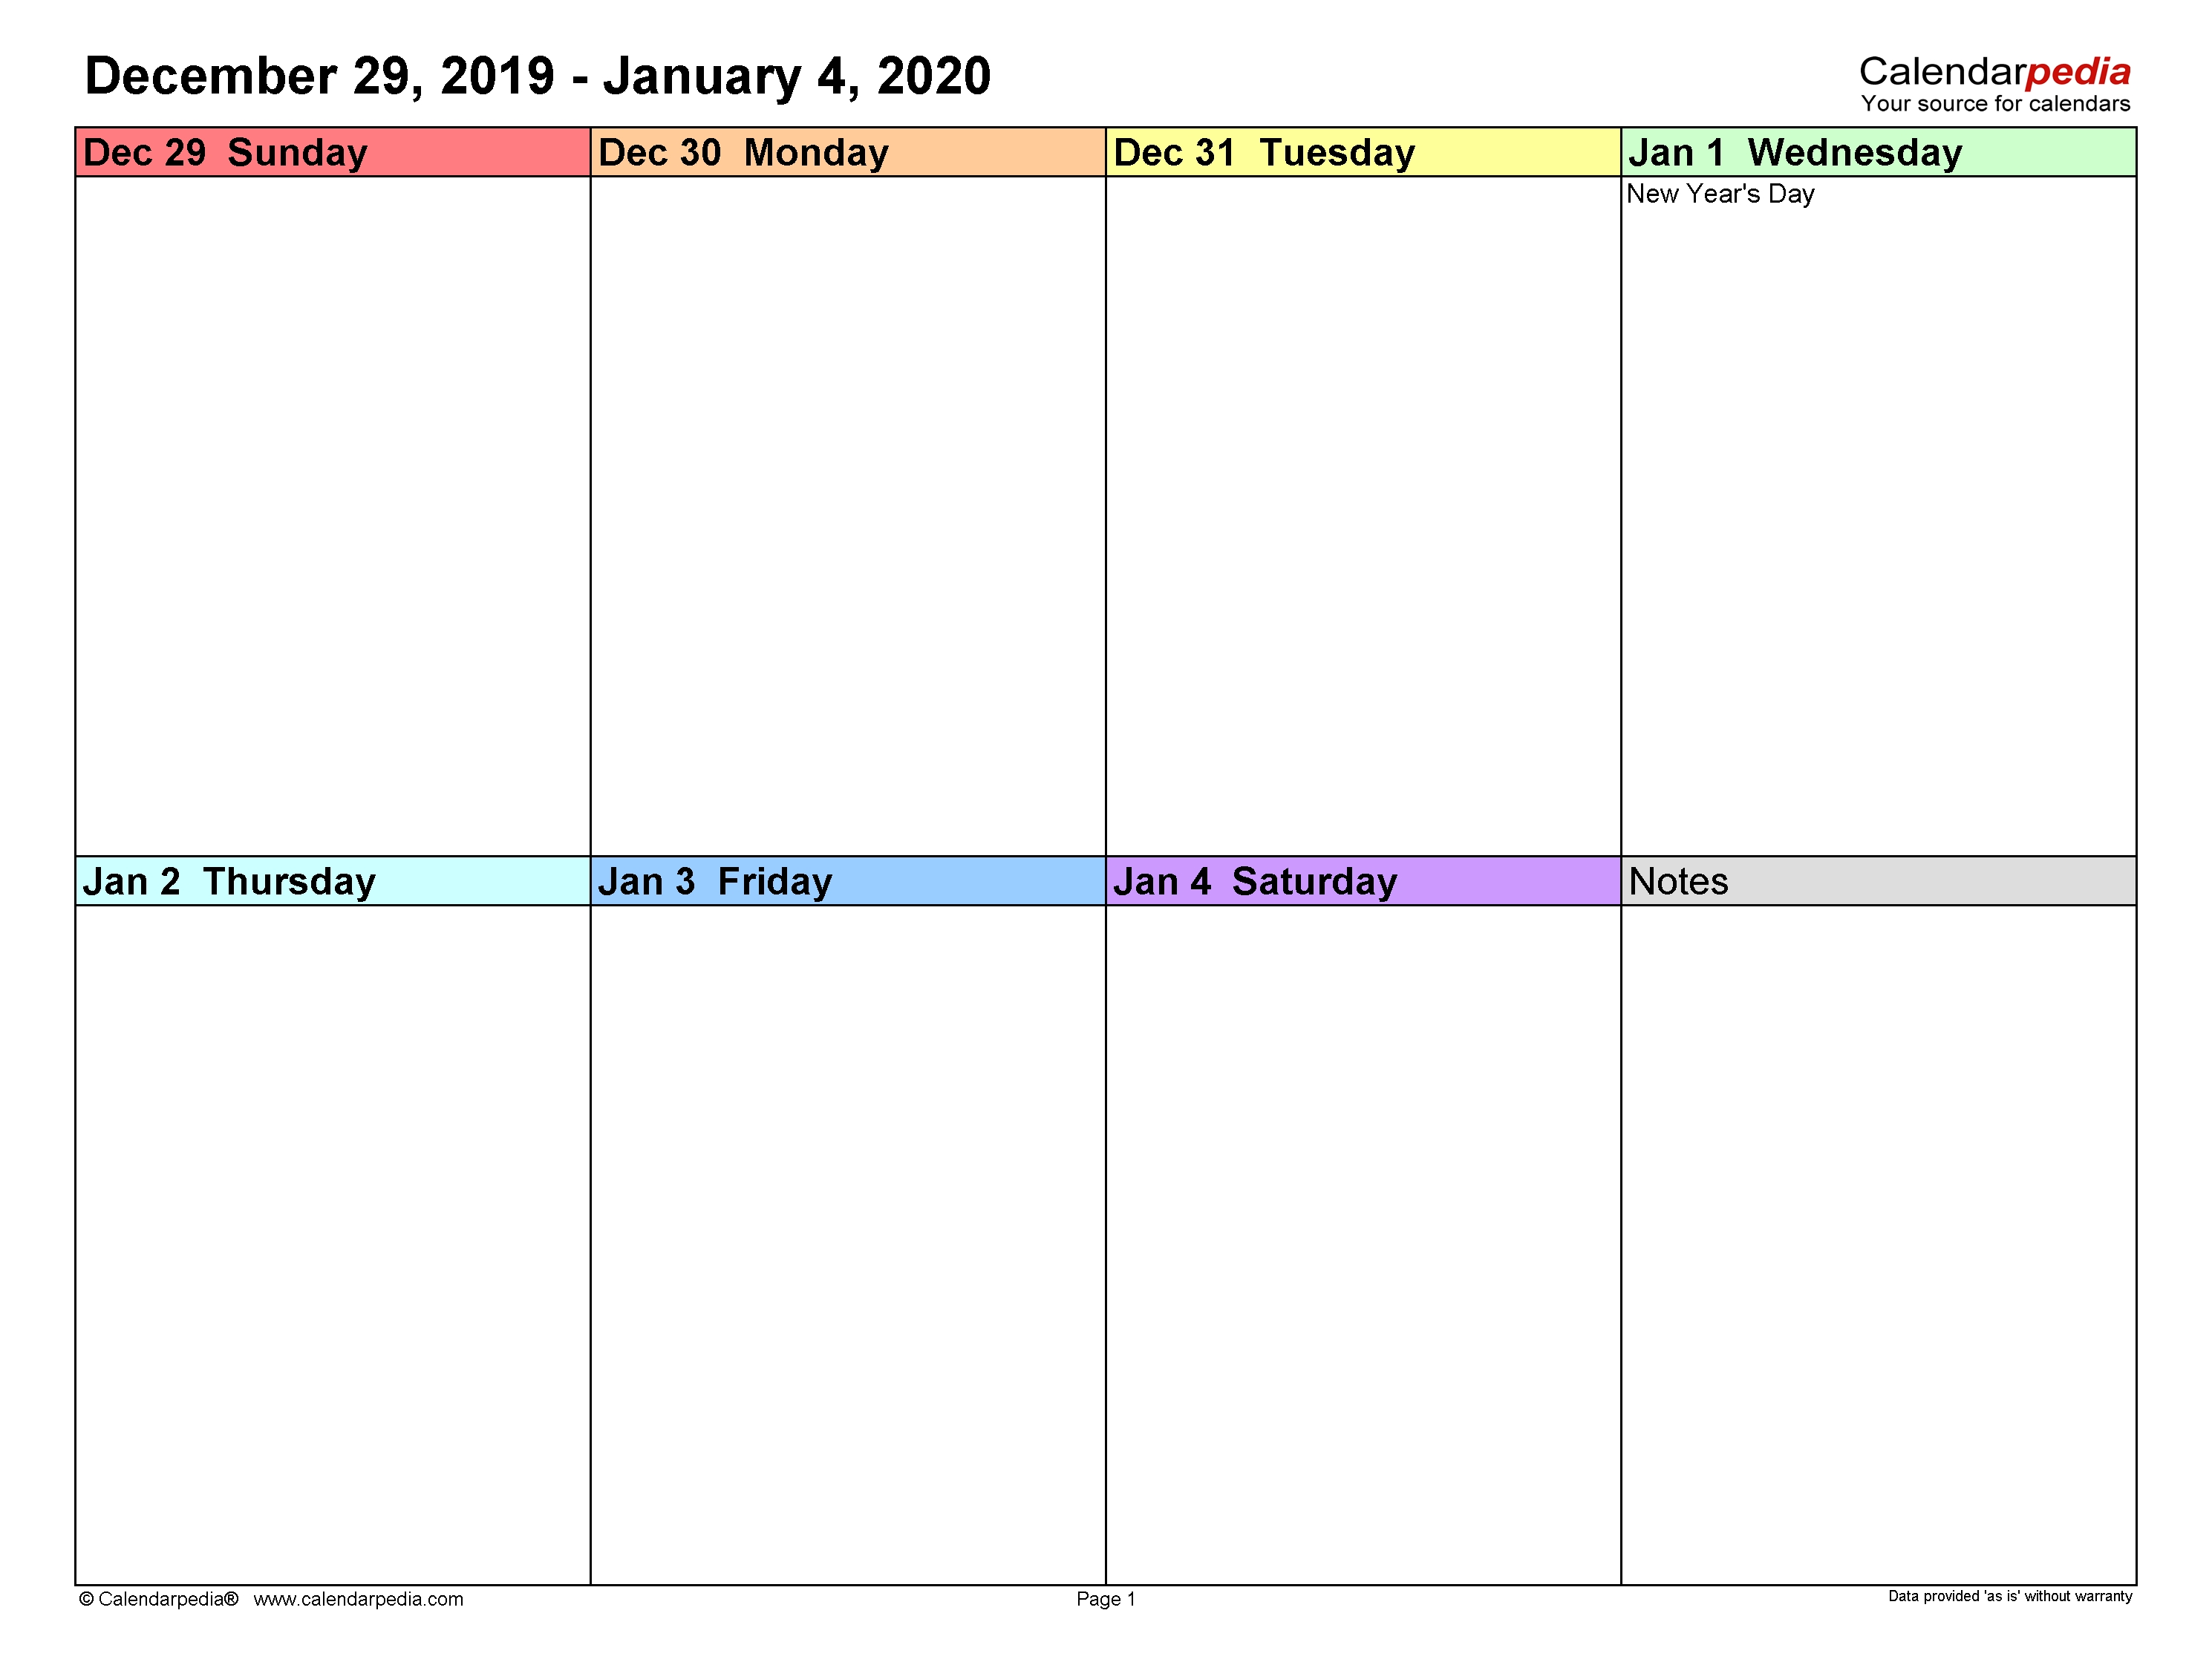 Weekly Calendars 2020 For Word - 12 Free Printable Templates with Free Printable One Week Calendar 2020